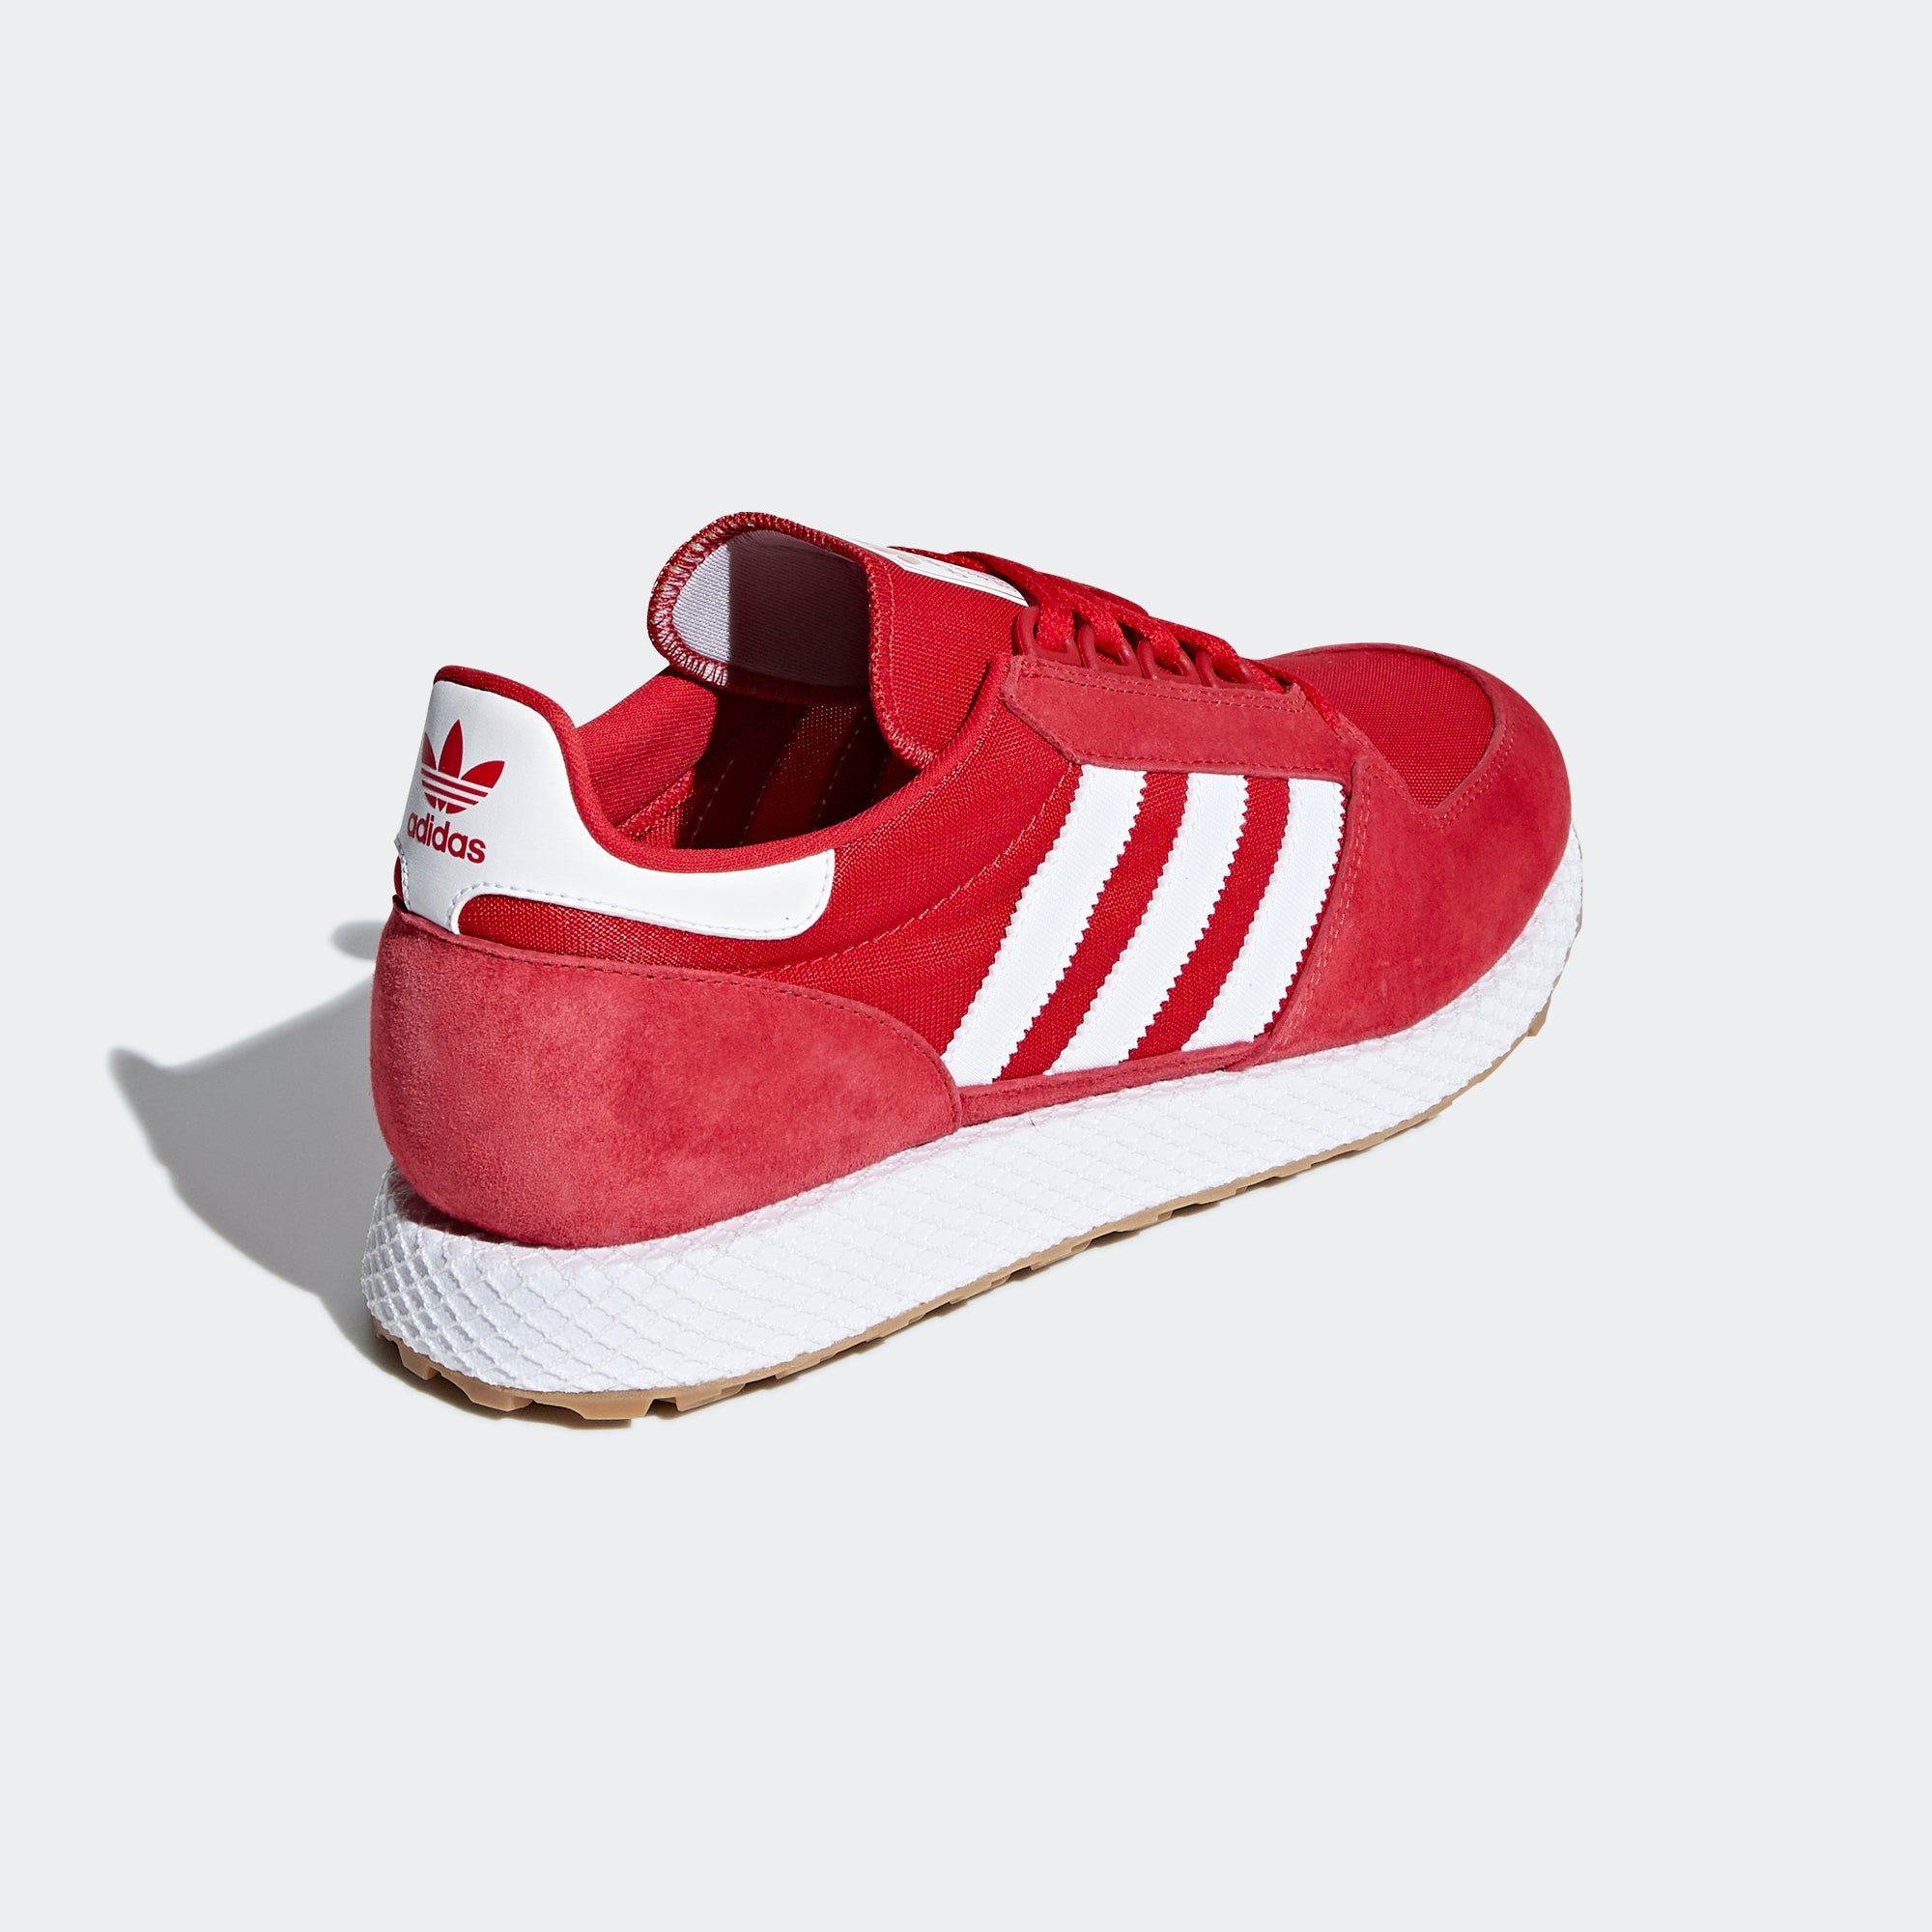 the best attitude 4bbc0 d2163 Mens adidas Originals Forest Grove Shoes Scarlet Red. 1